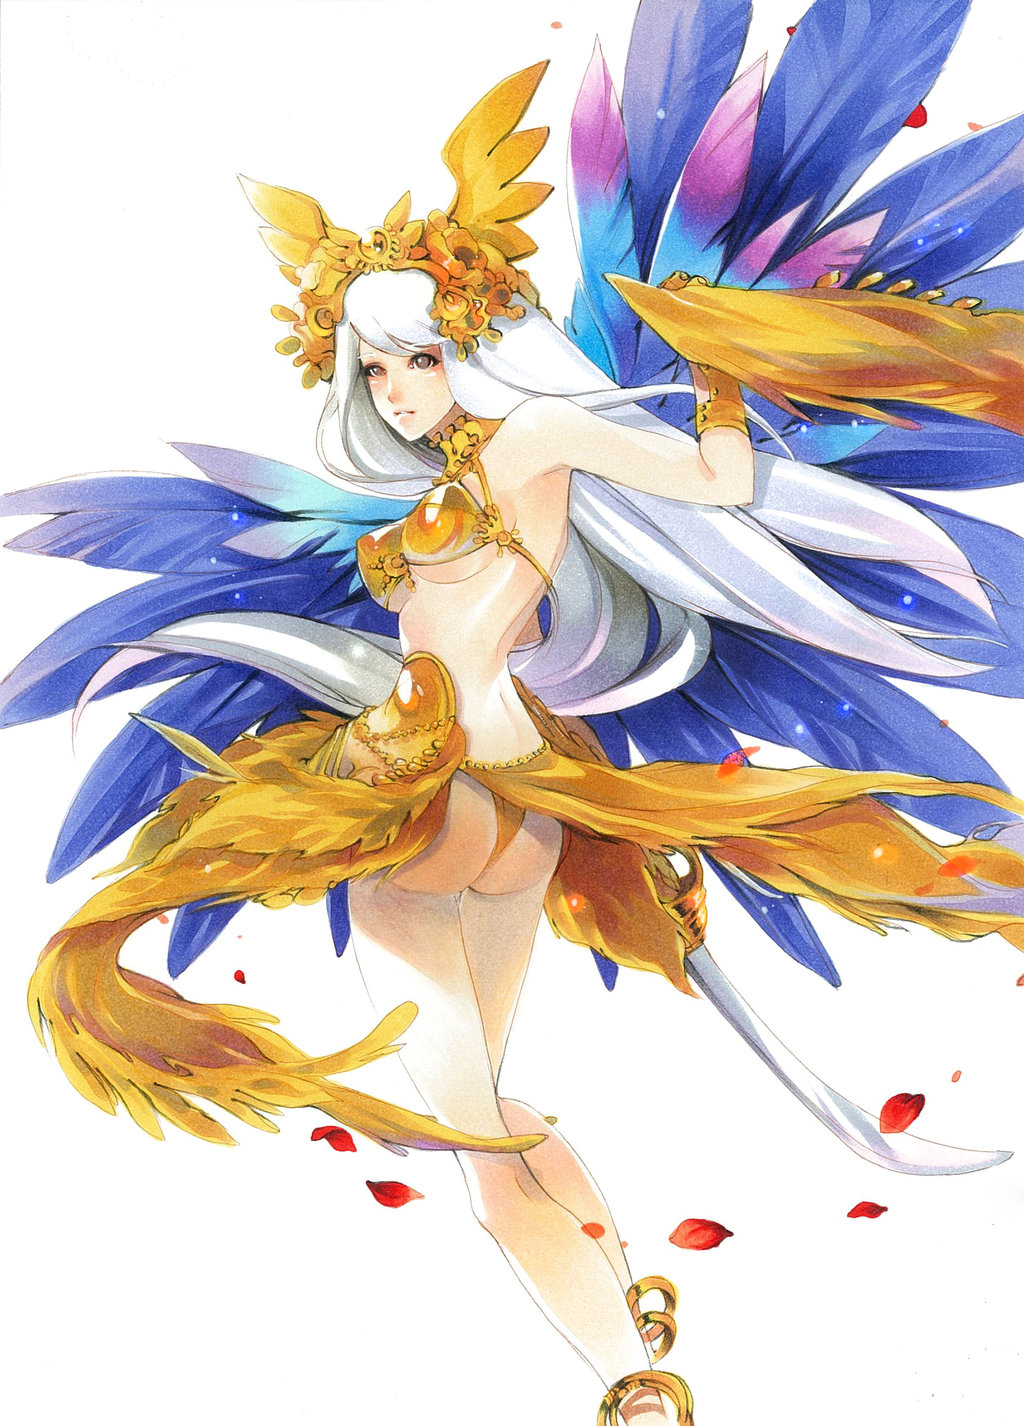 1girl anklet ass bangle bra bracelet breasts cleavage feathers hair_ornament headpiece highres holding jewelry jonathan_liang large_breasts lips long_hair looking_at_viewer midriff navel necklace saber_(weapon) sheena_(terra_battle) solo stomach sword terra_battle traditional_media underwear very_long_hair weapon white_hair